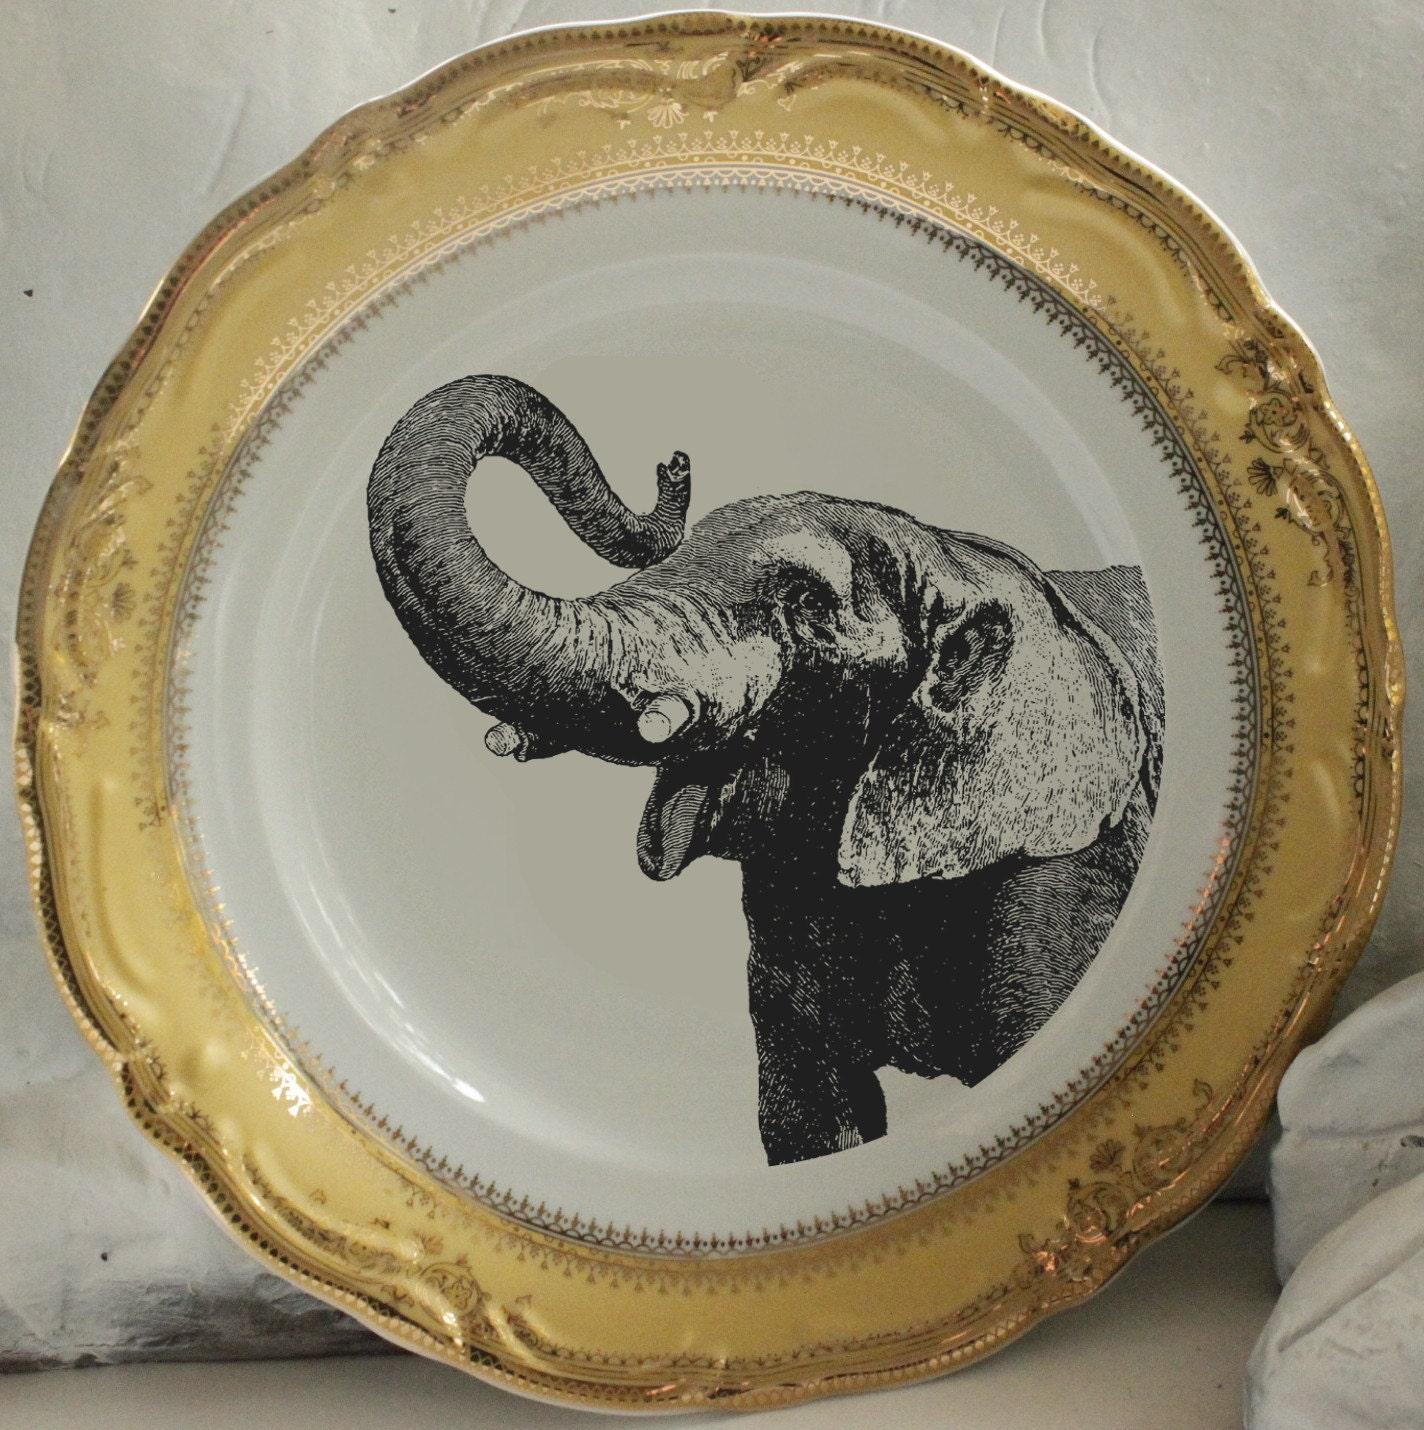 LIST PRICES MAY DIFFER FOR LARGE ORDER QUANTITIES - PLEASE LET US KNOW IF YOU PLAN ON PURCHASING SEVERAL ITEMS COST DECREASES WITH QUANTITY ORDERED. & Silver Elephant Plate Elephant Dish Elephant Dinnerware